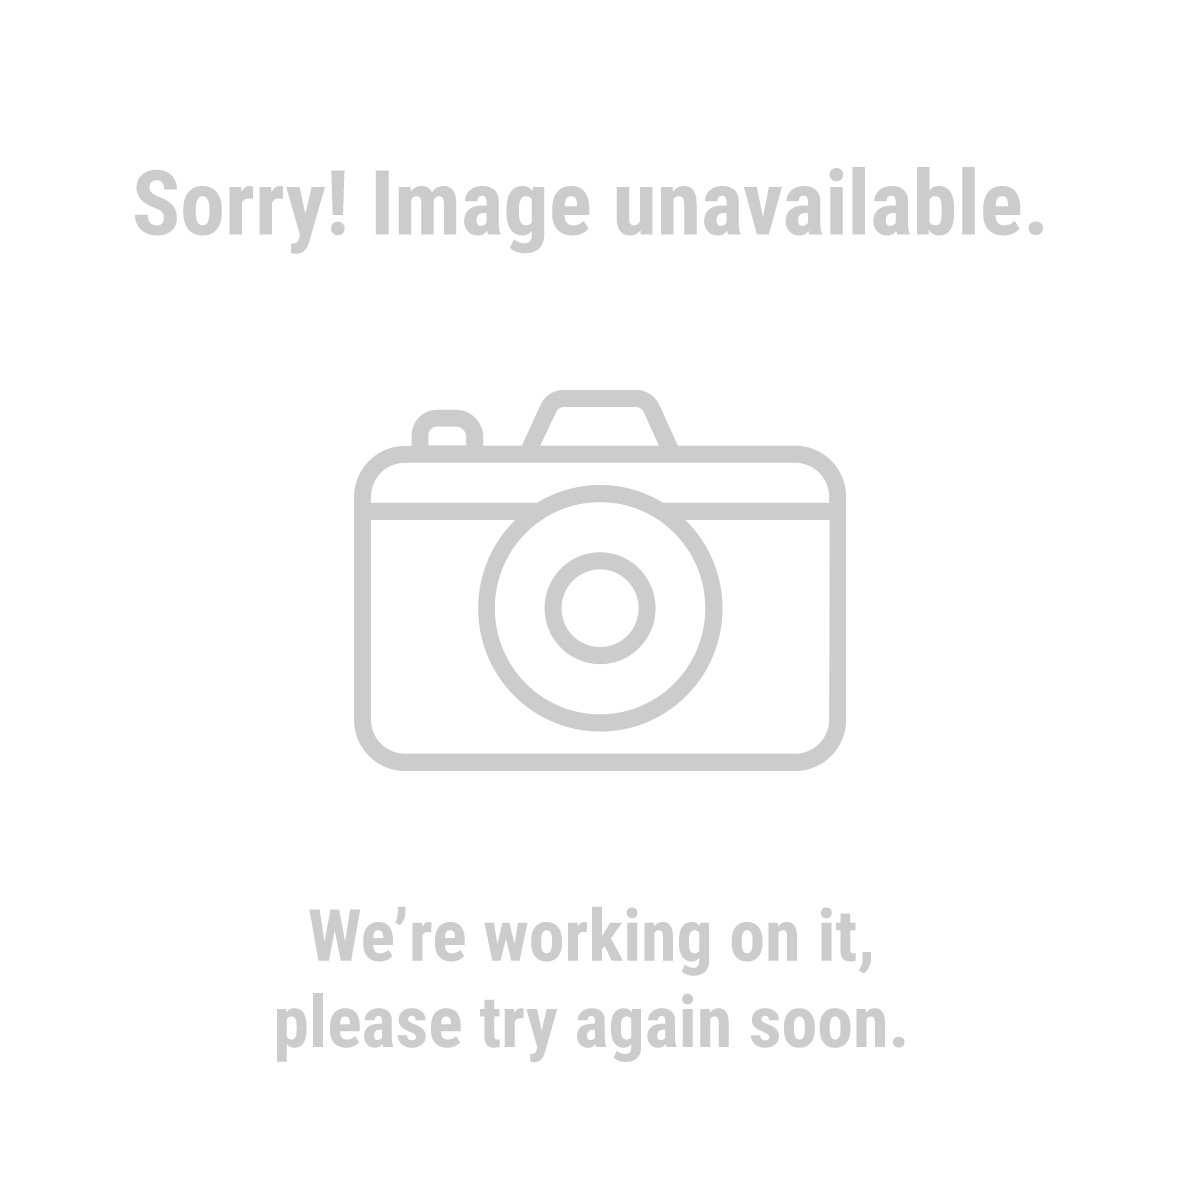 StikTek 63245 60 Yd. x 1.88 in. General Purpose Masking Tape